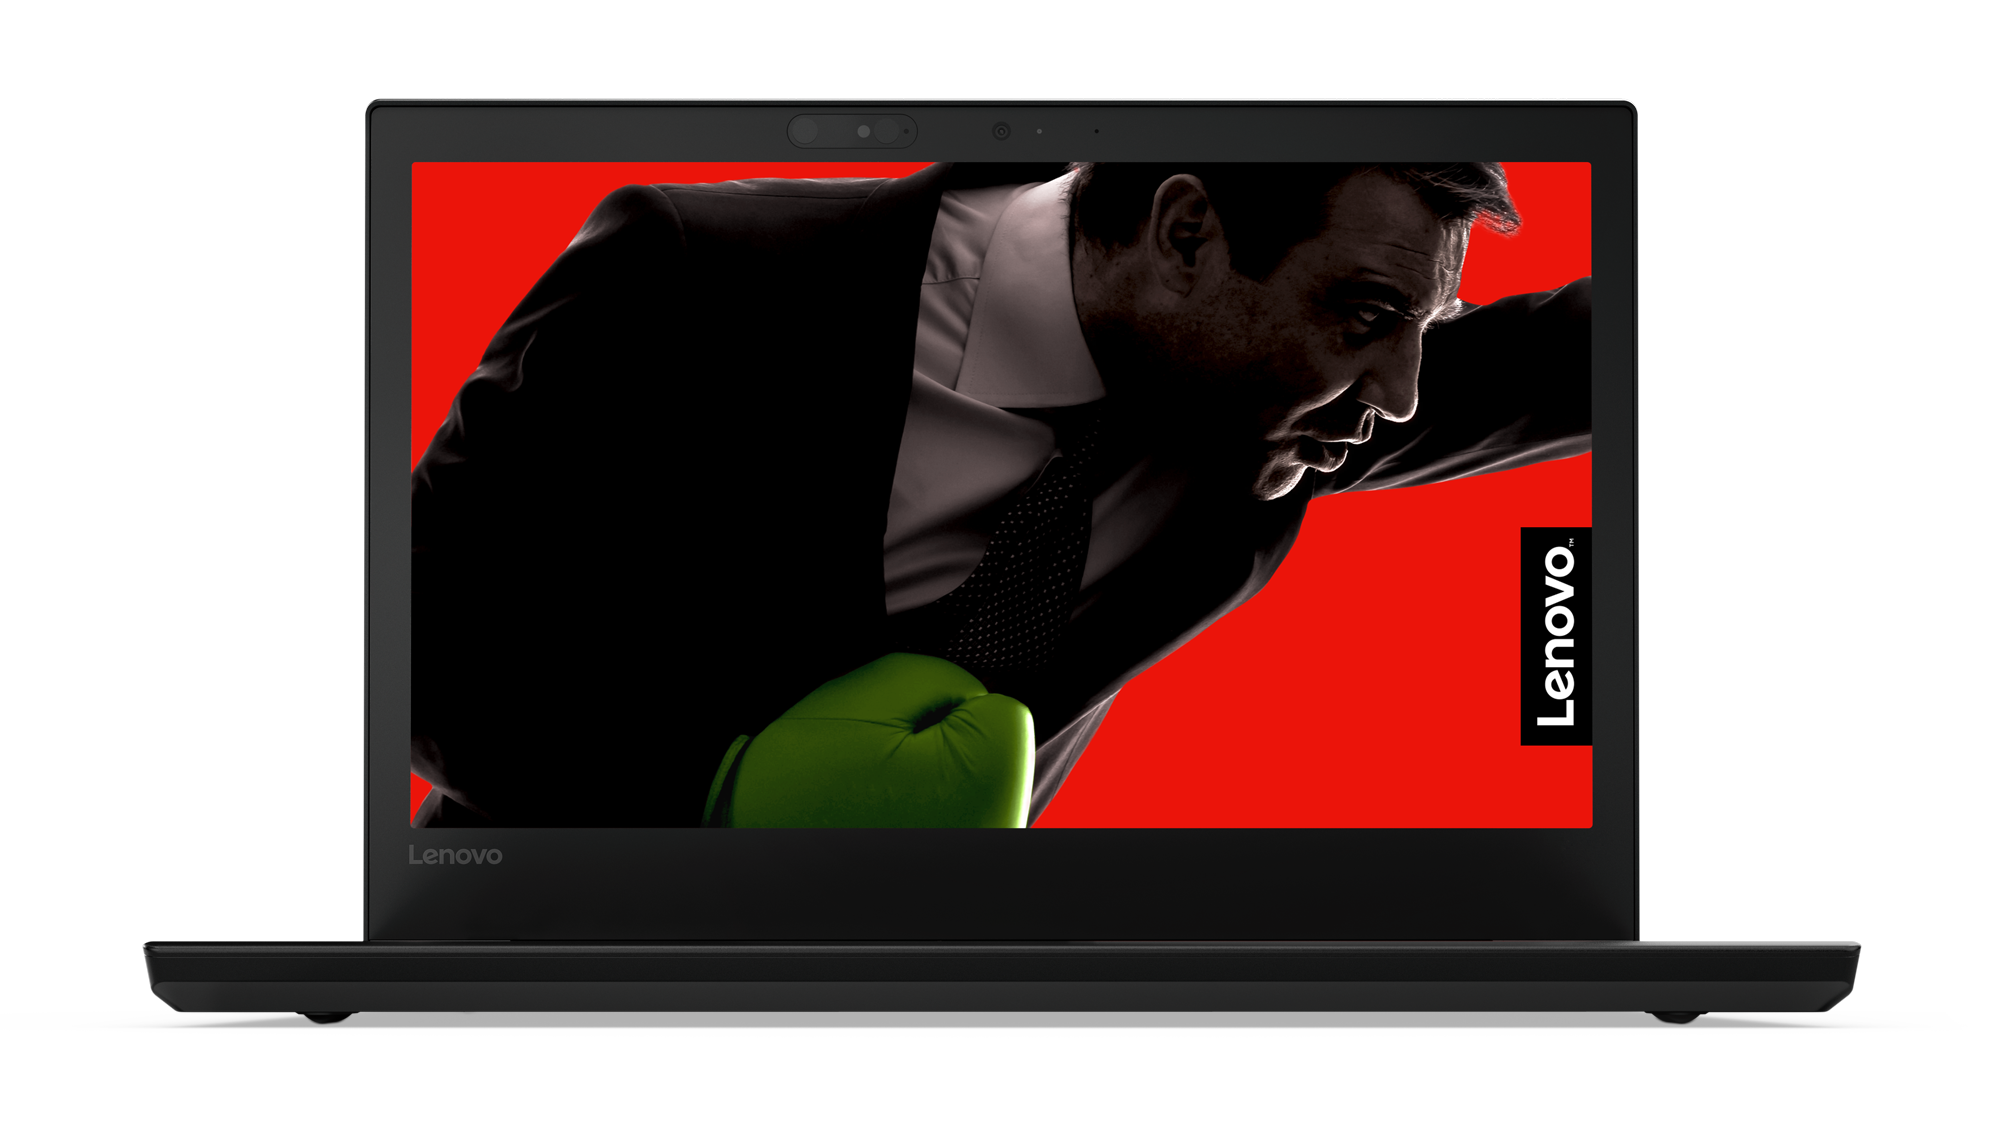 Lenovo announces its ThinkPad 25th Anniversary Edition